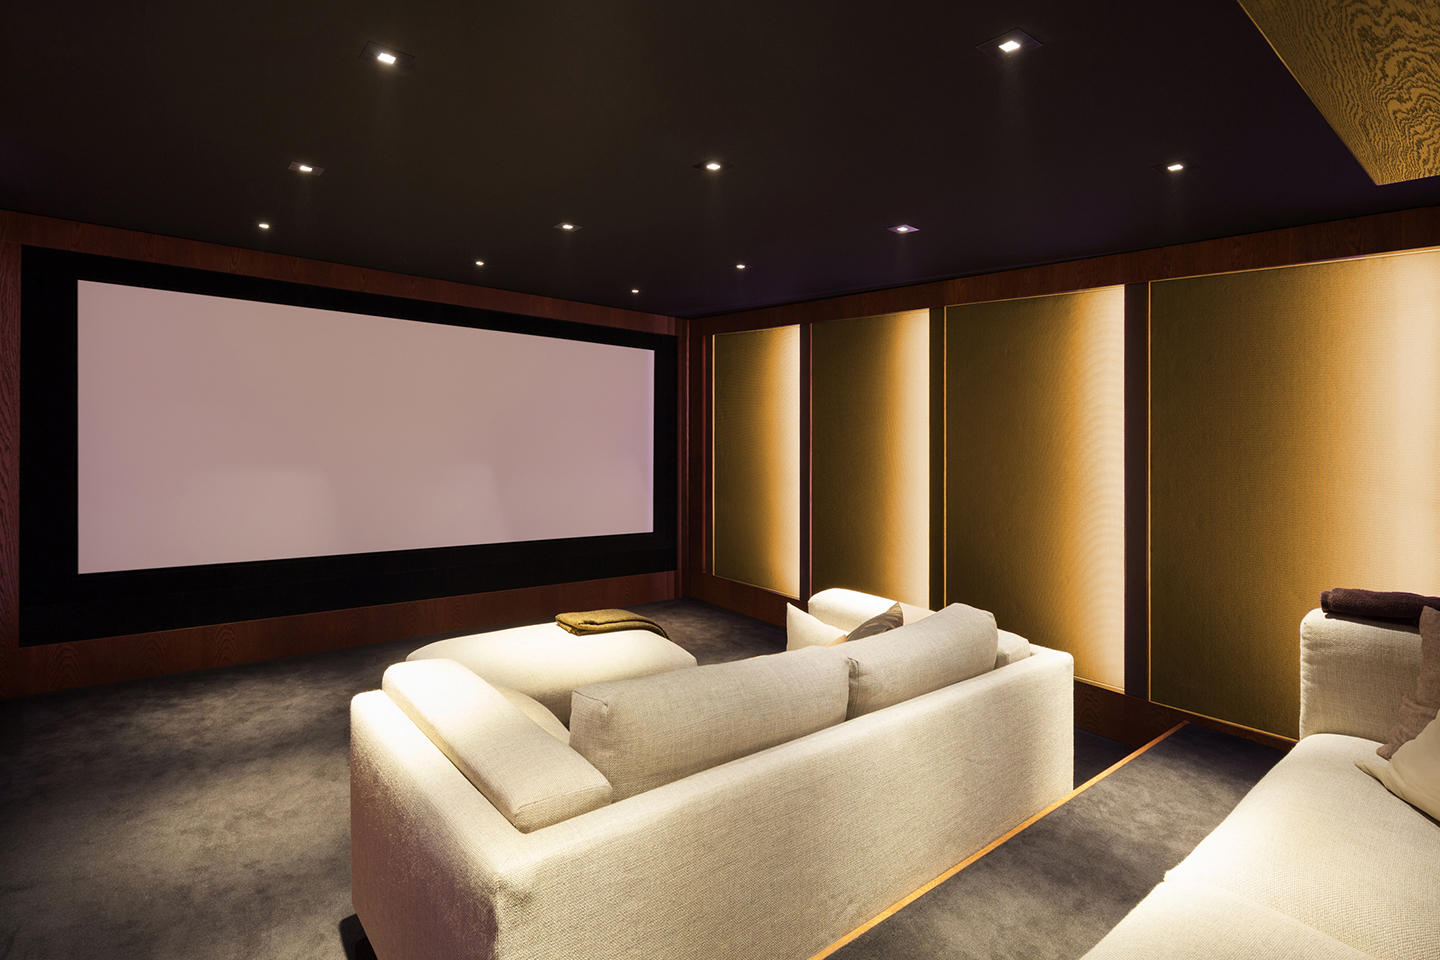 Home Theater Seating - Enjoys Your Films in The Comfort Of Your Own Home